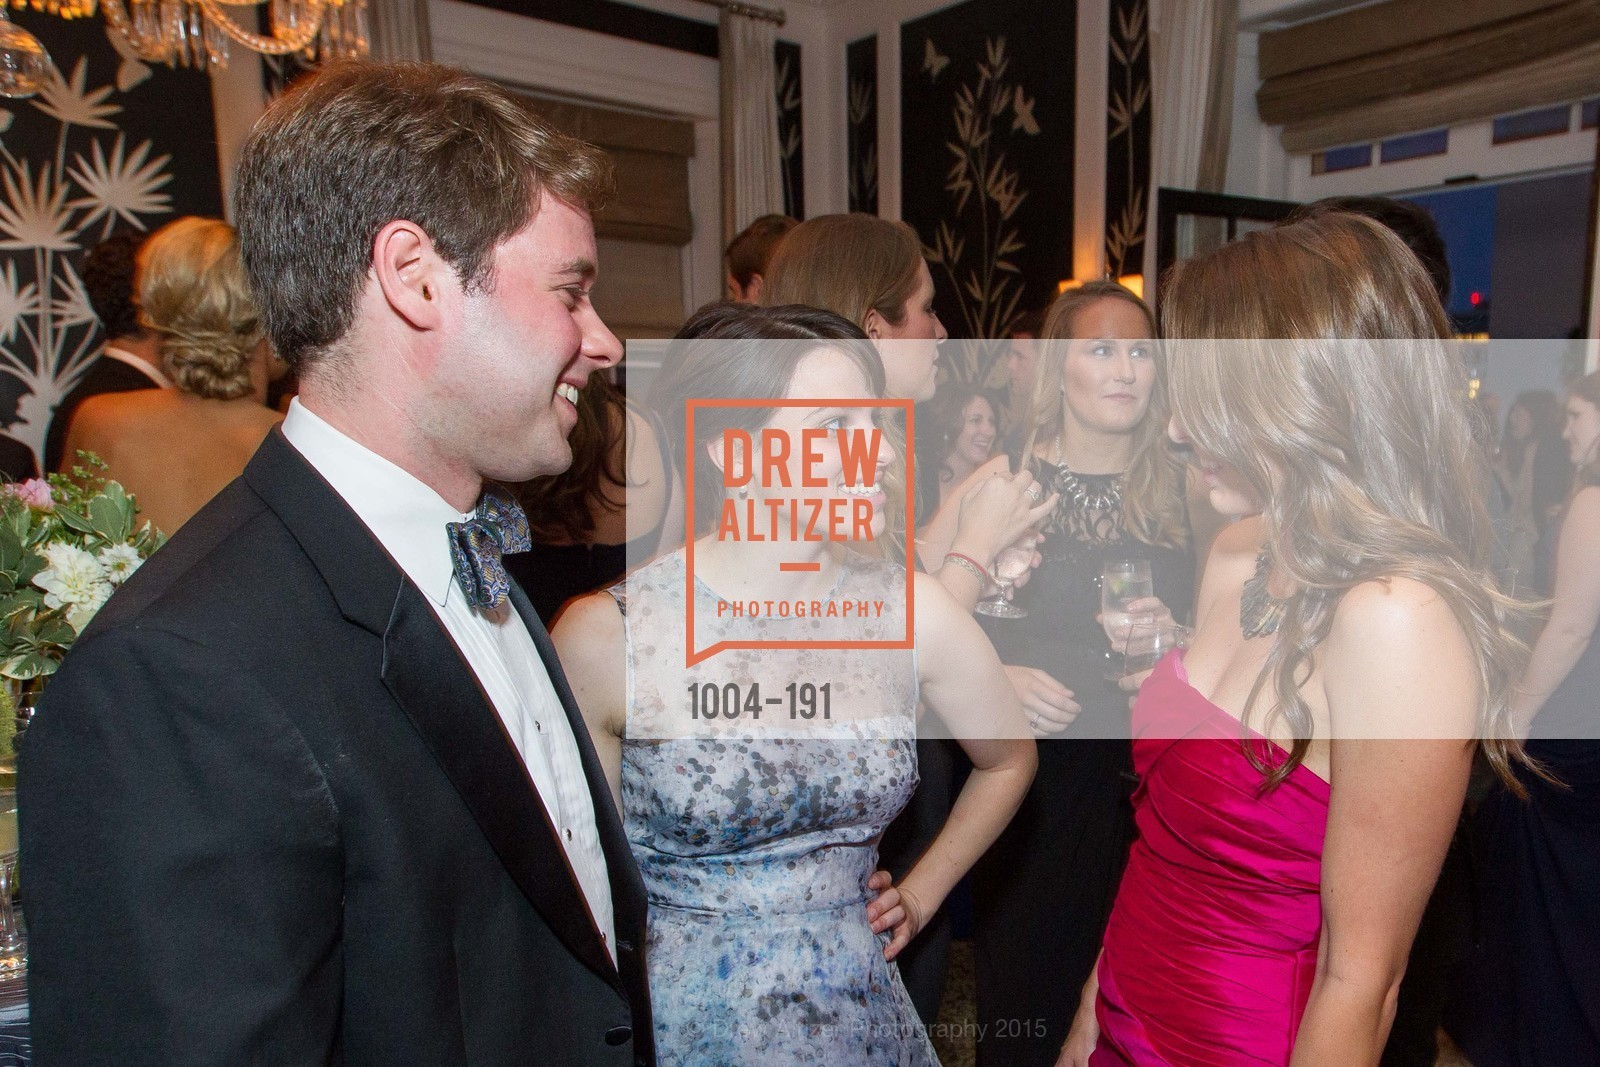 Dave Collins, Bailey Douglass, Spinsters of San Francisco Annual Ball 2015, Penthouse at the Fairmont San Francisco (950 Mason Street). 950 Mason Street, June 28th, 2015,Drew Altizer, Drew Altizer Photography, full-service agency, private events, San Francisco photographer, photographer california